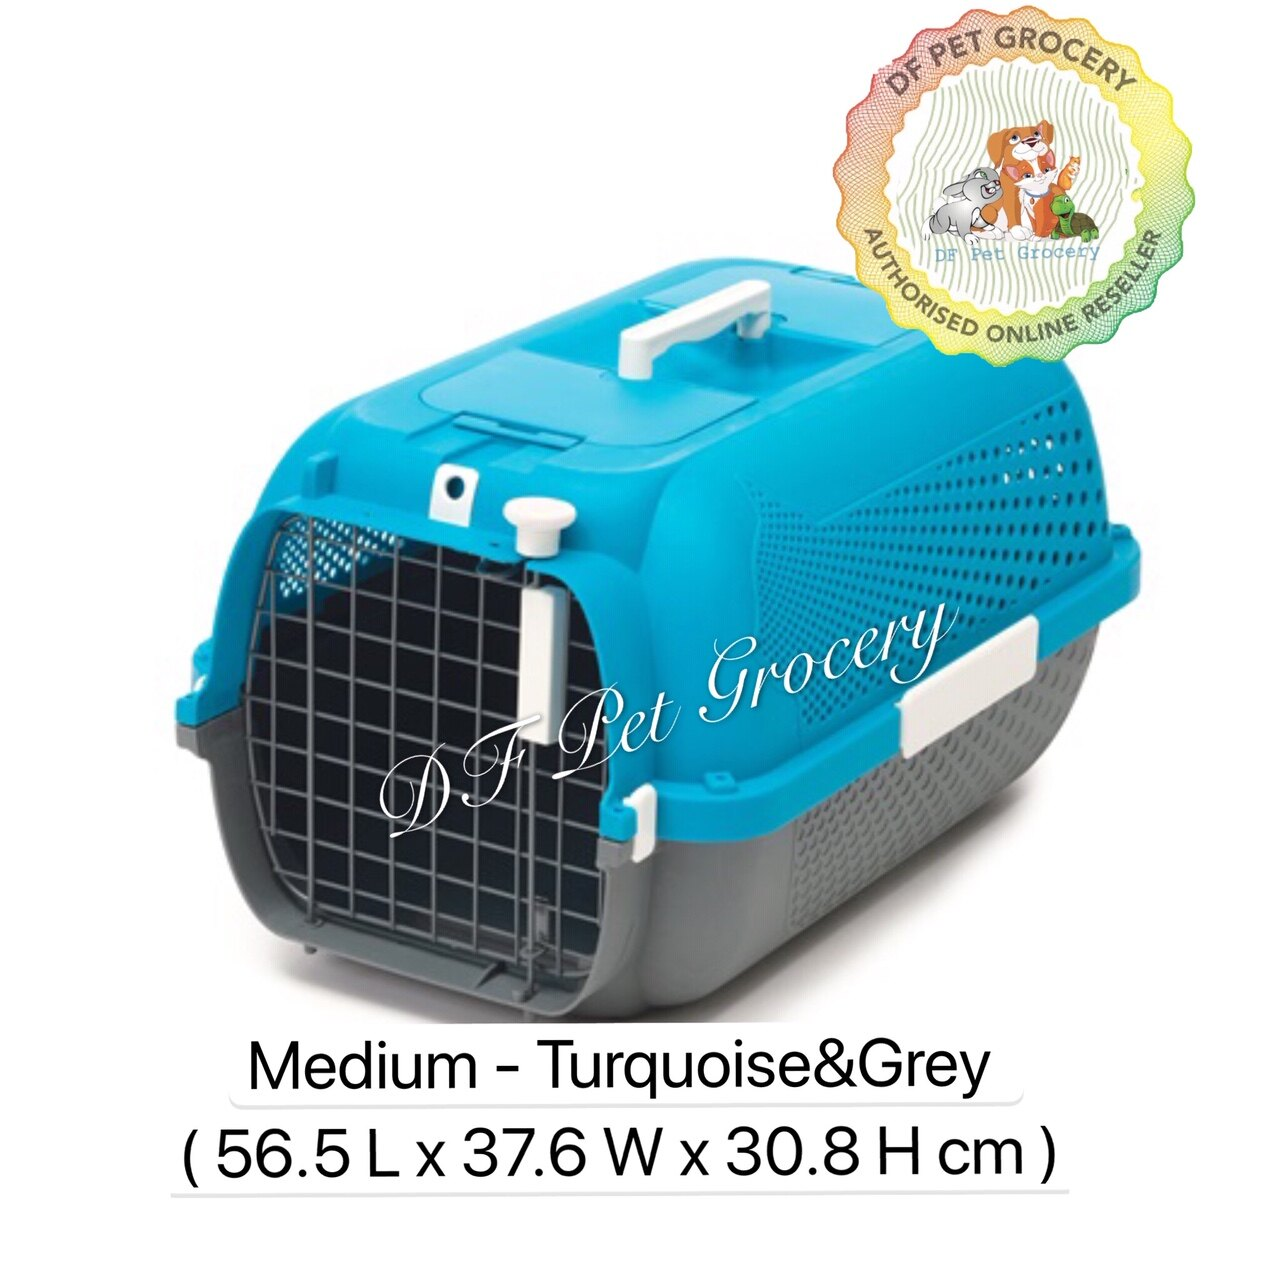 Hagen Catit Pet Voyageur Turquoise/Grey Medium - Cat Carrier  Dog Carrier  Dogit  Catit  41384 Pet Carrier